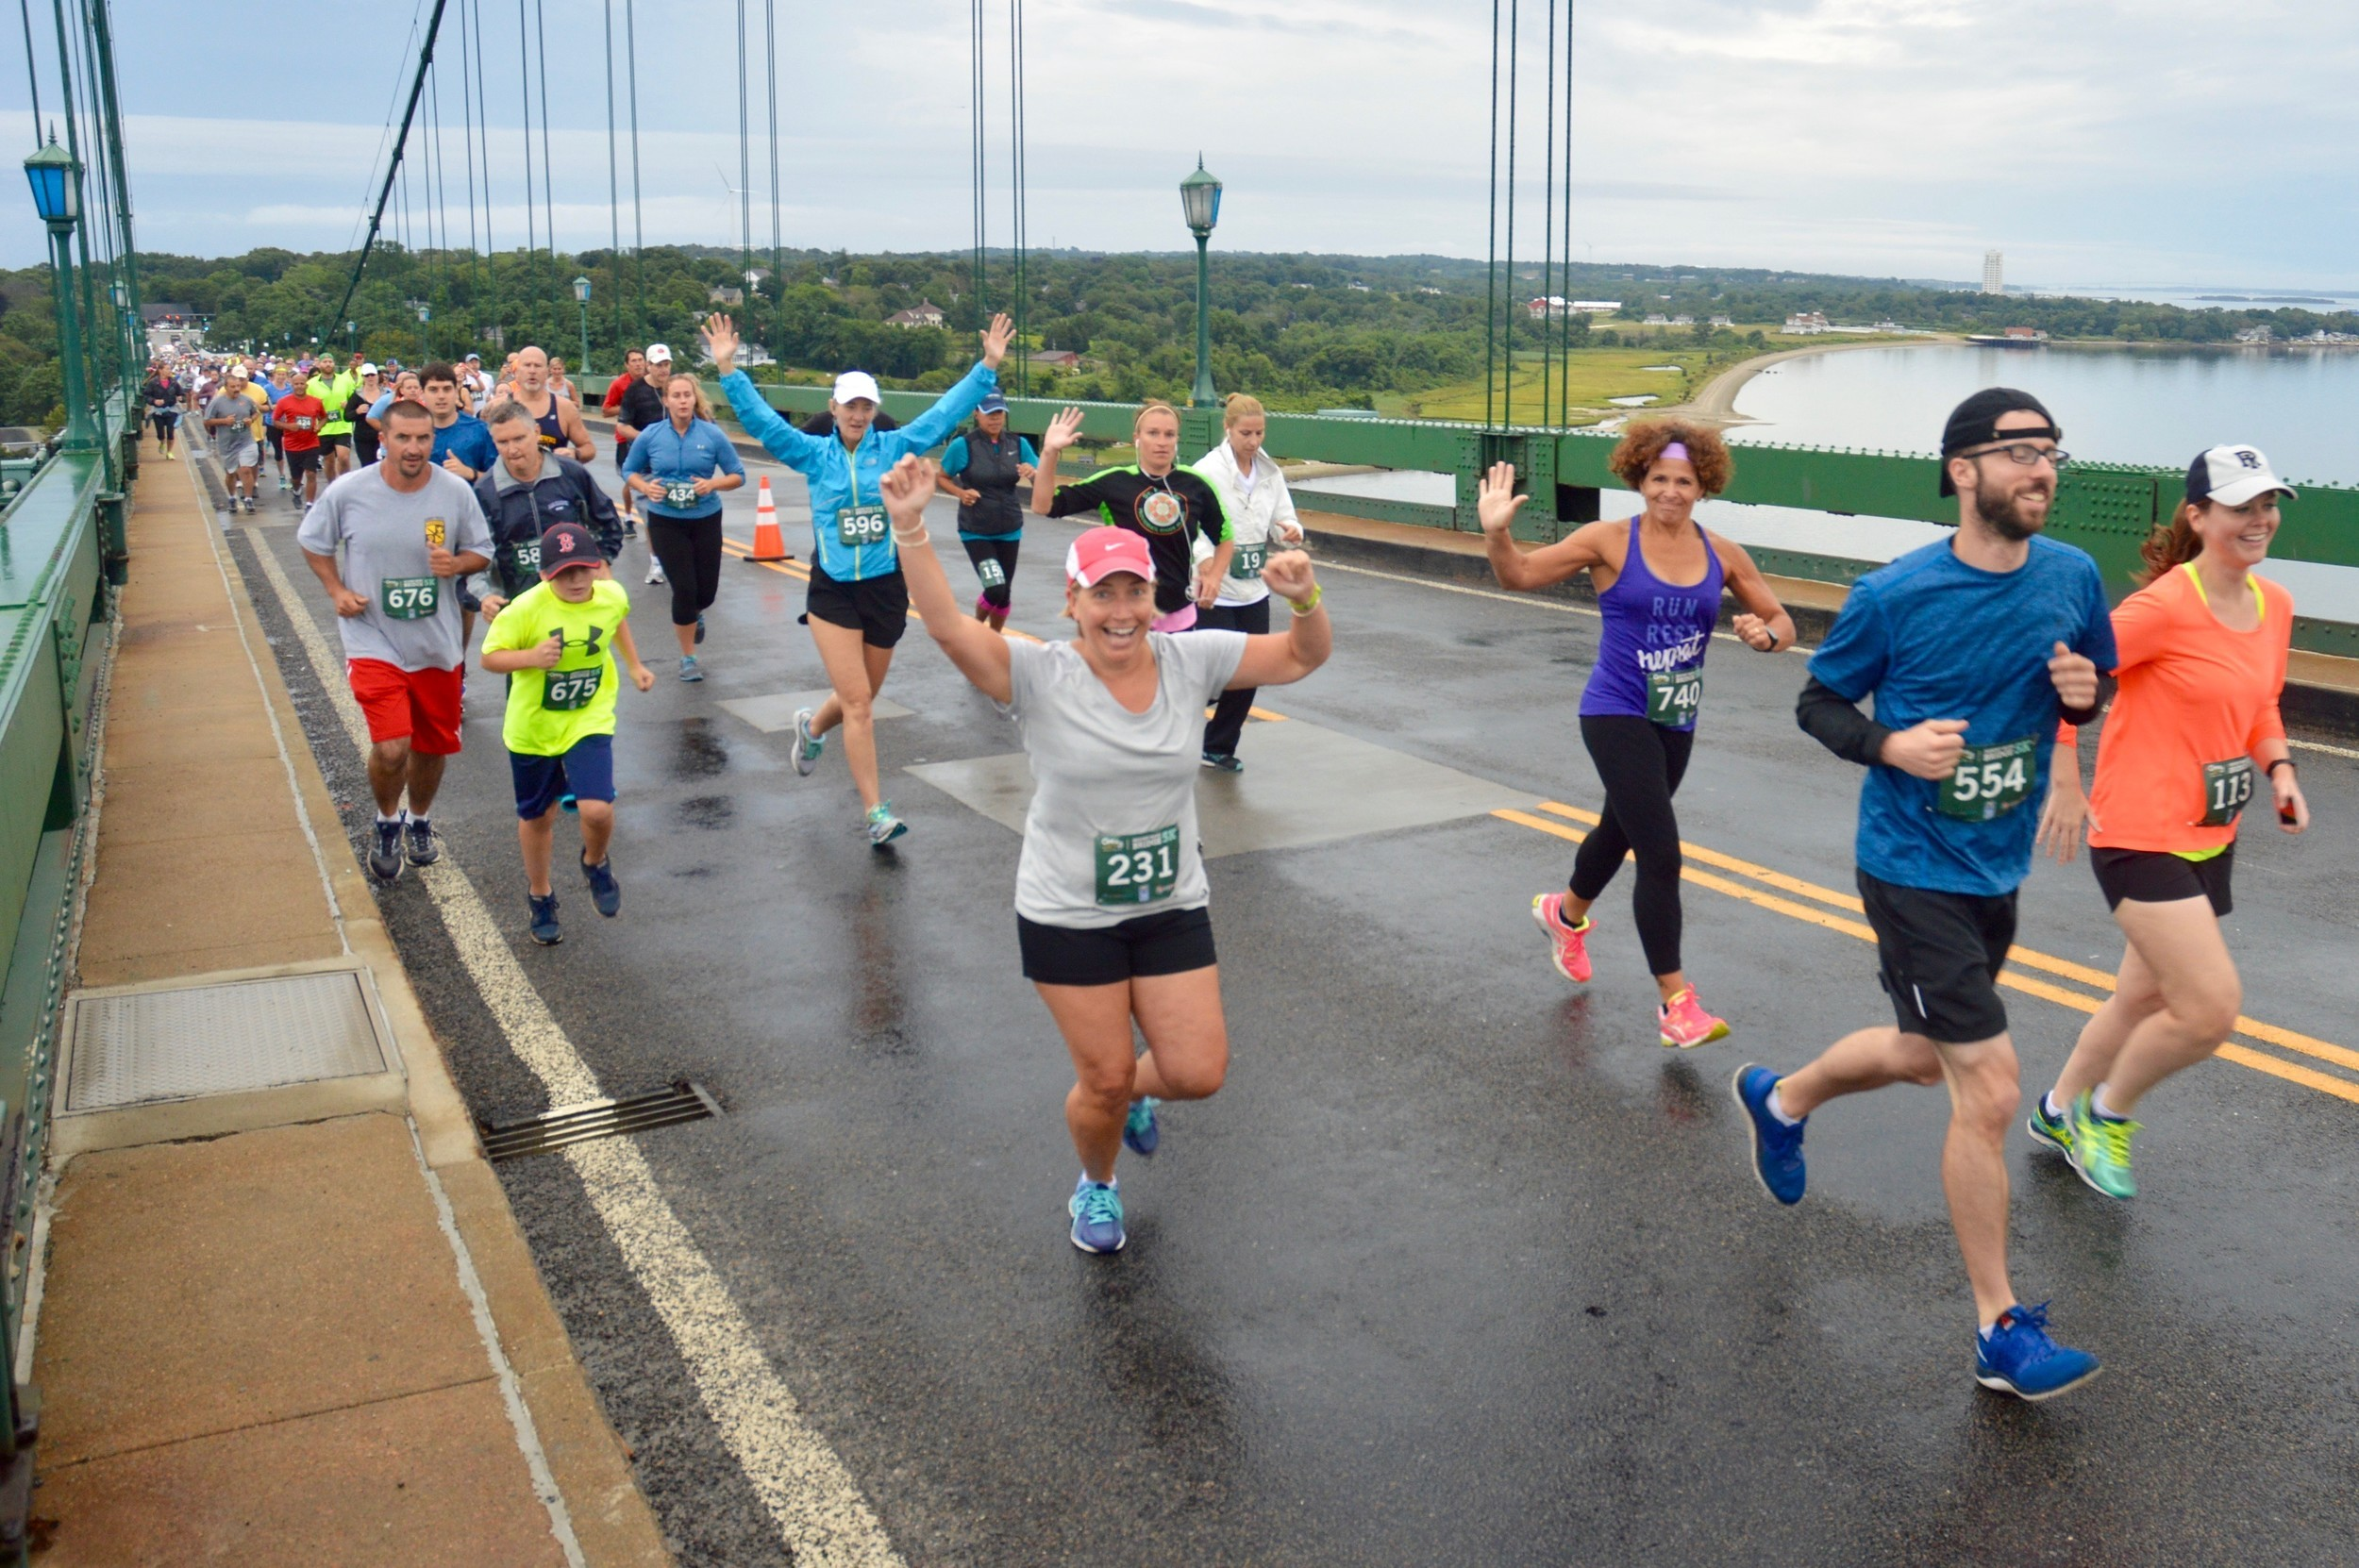 Runners head over to Bristol during the inaugural Mt. Hope Bridge 5K Road Race. Portsmouth is in the background, with the Carnegie Abbey Tower seen in the distance at right.